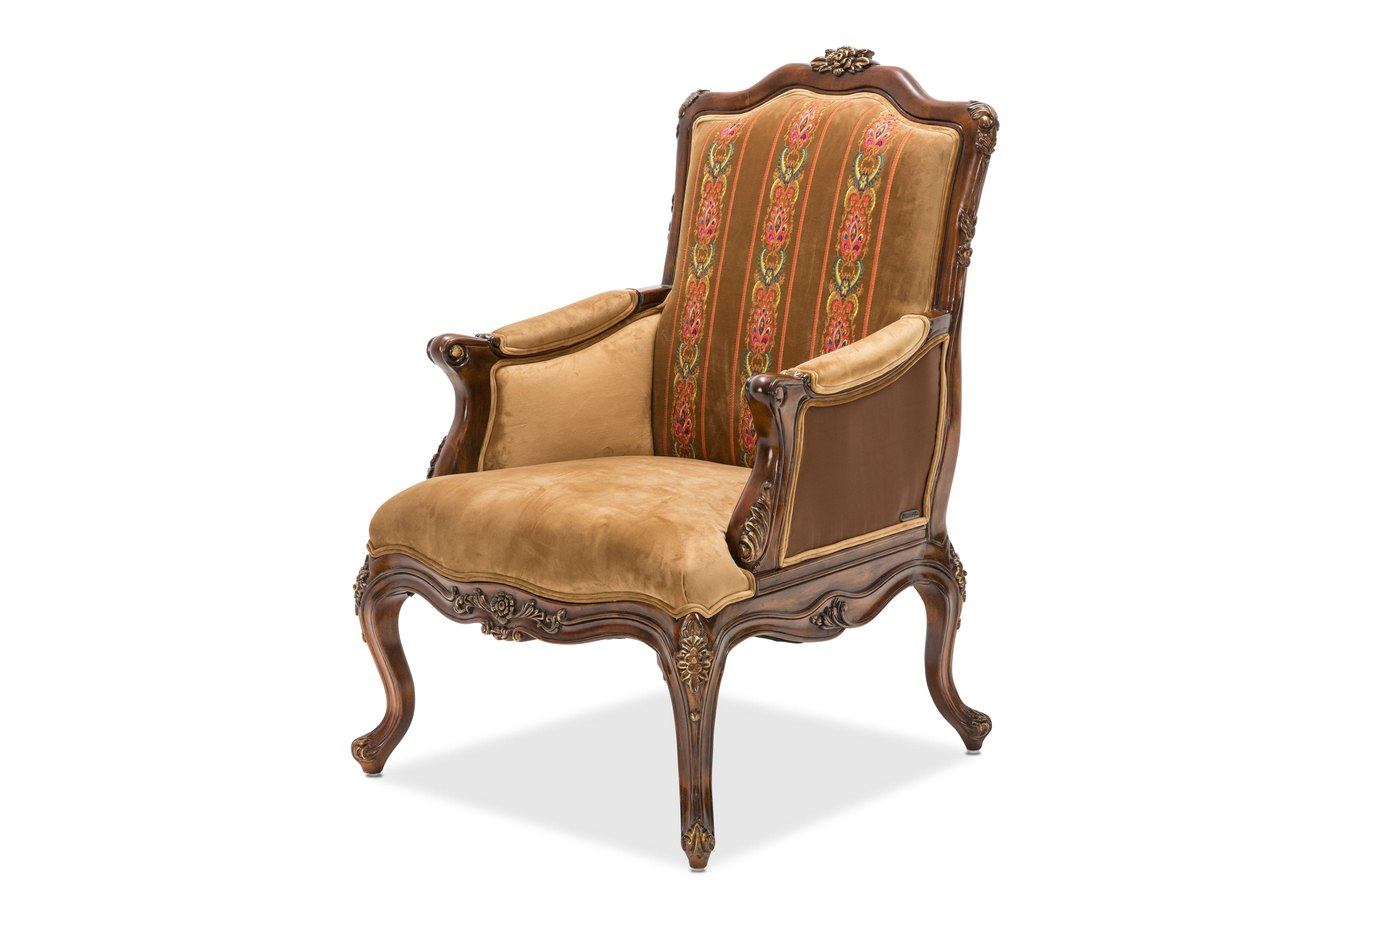 Sienna Victorial Accent Chair In Butterscotch With Carved